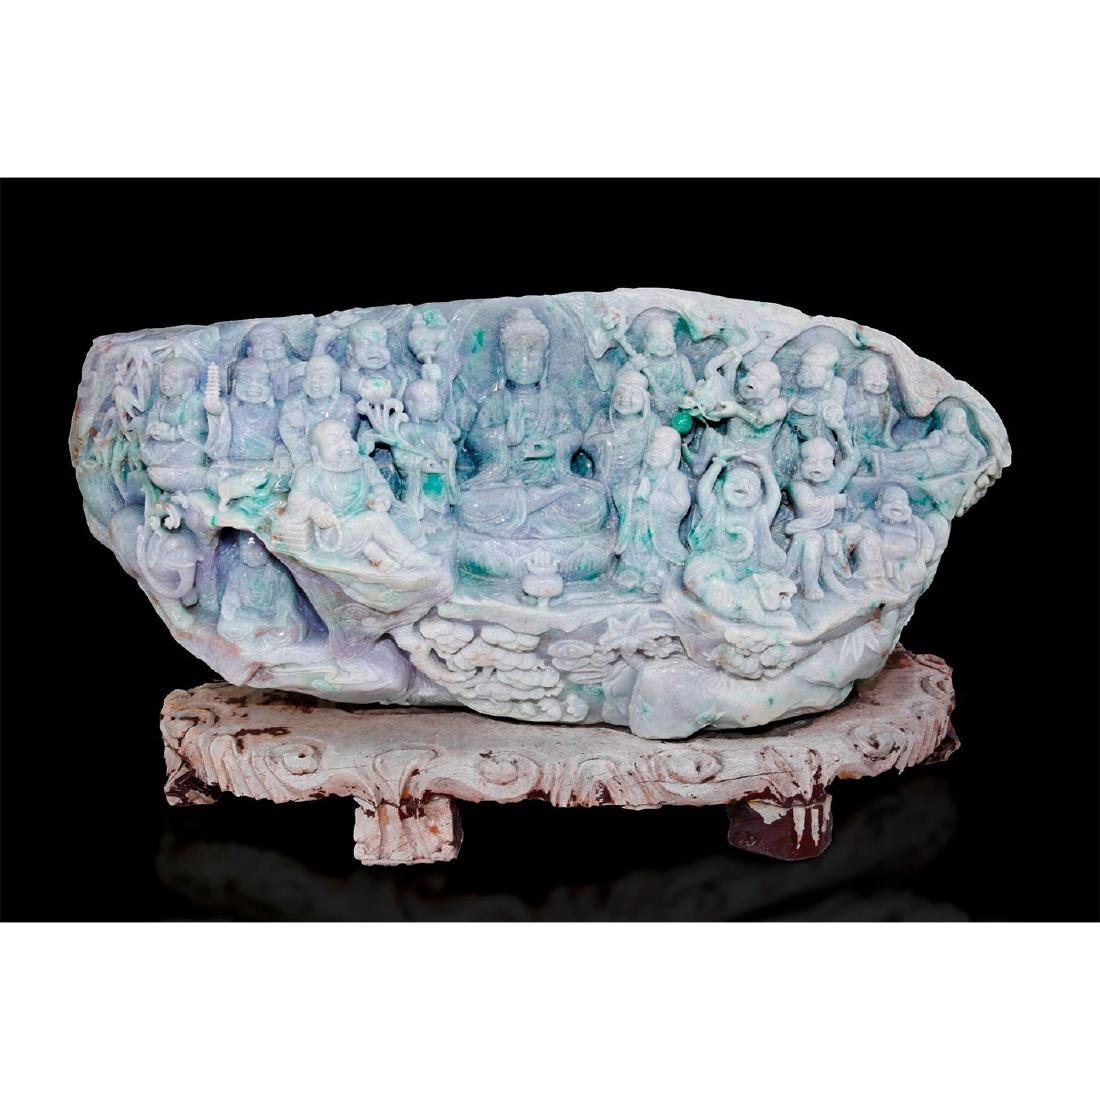 CHINESE CARVED JADE MONUMENTAL FIGURAL GROUP, 18